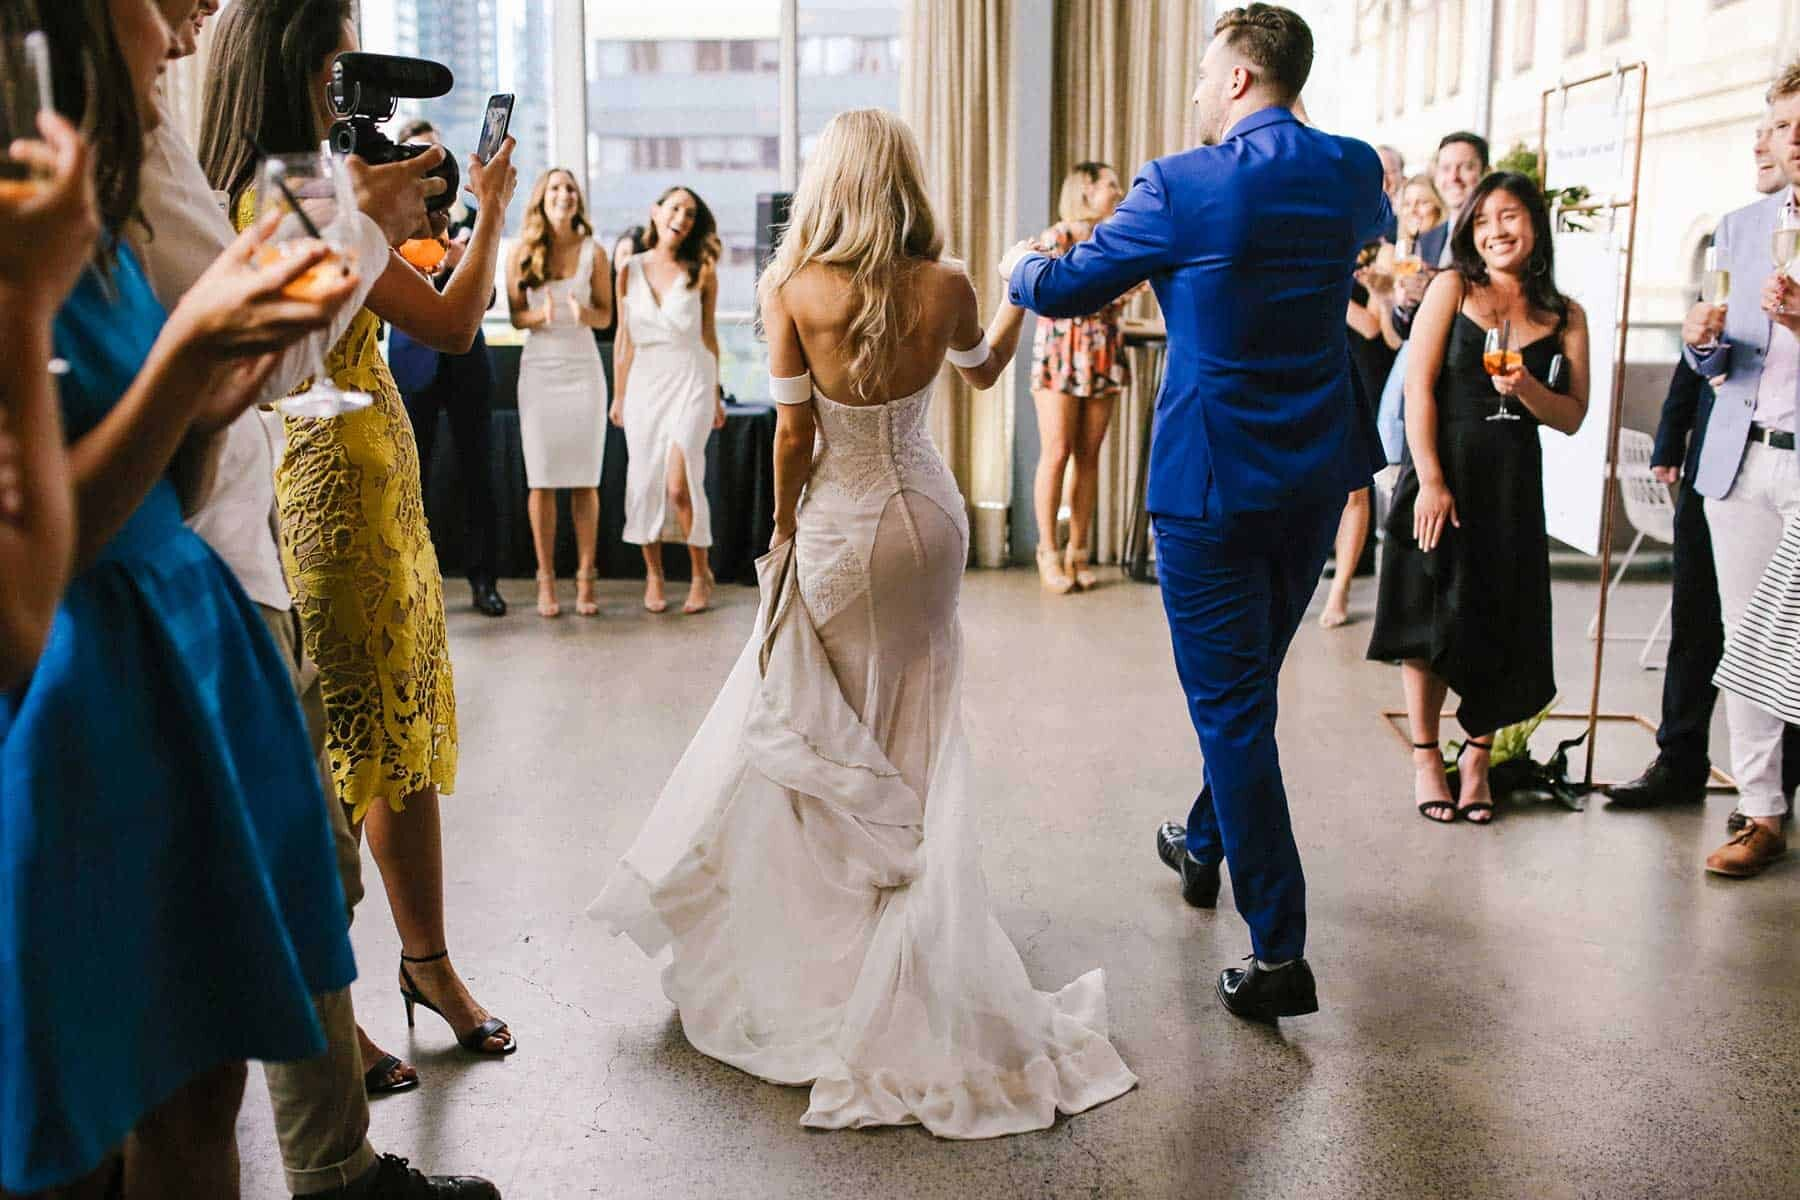 Melbourne Event Company - professional wedding band and DJ service